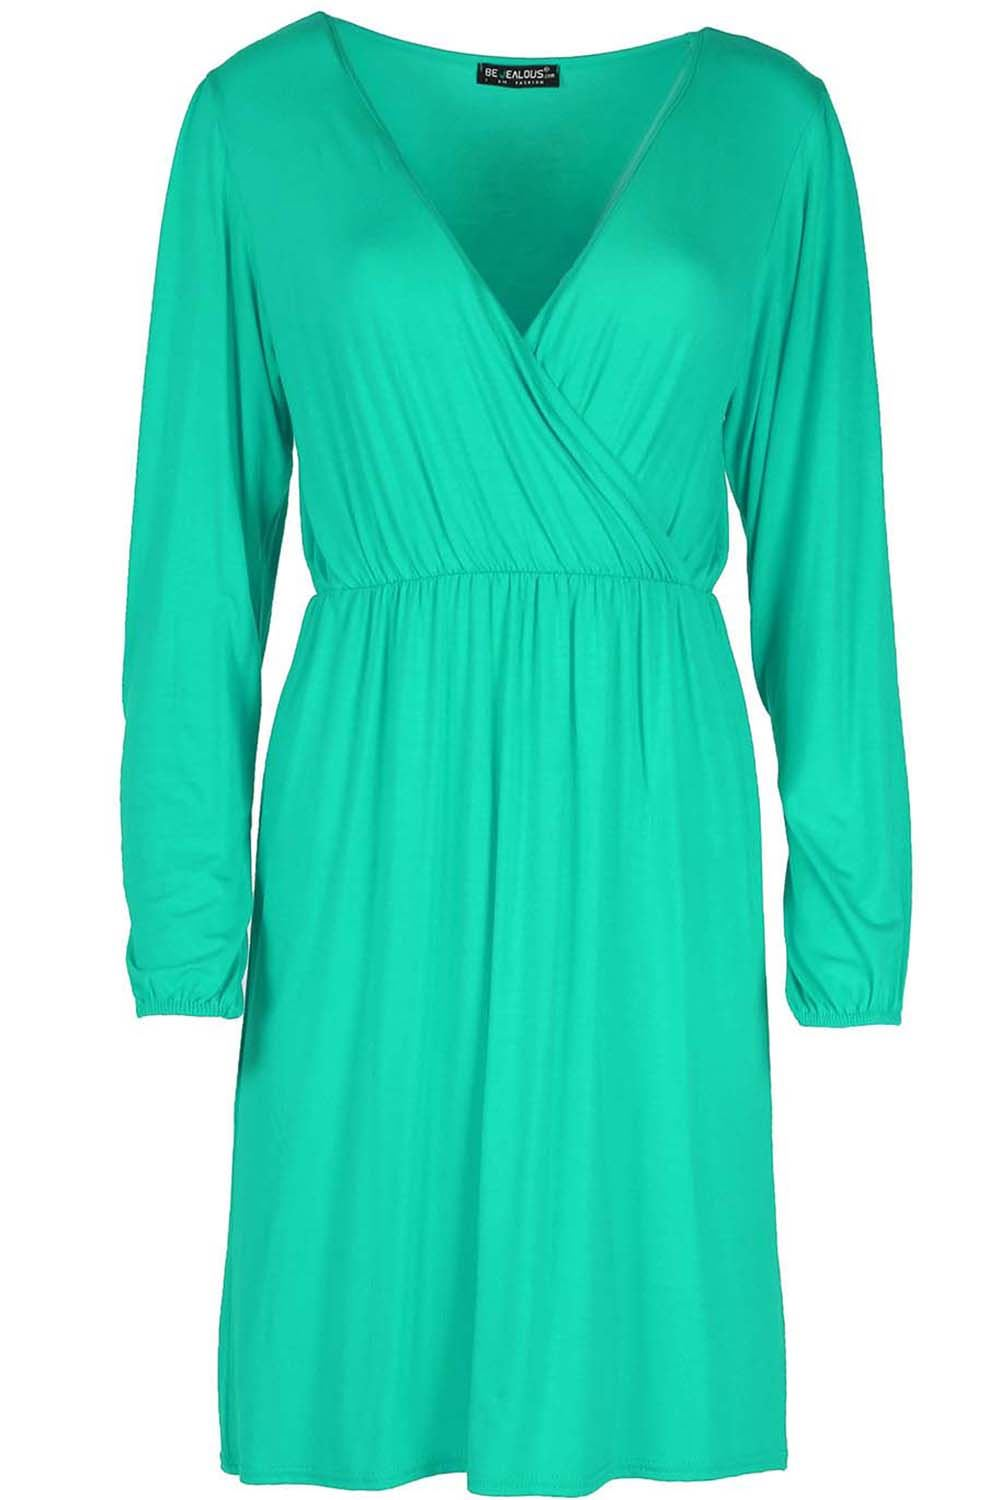 Ladies-Womens-Ruched-Cross-Over-Swing-Flared-Wrap-Front-Skater-Midi-Dress-Top